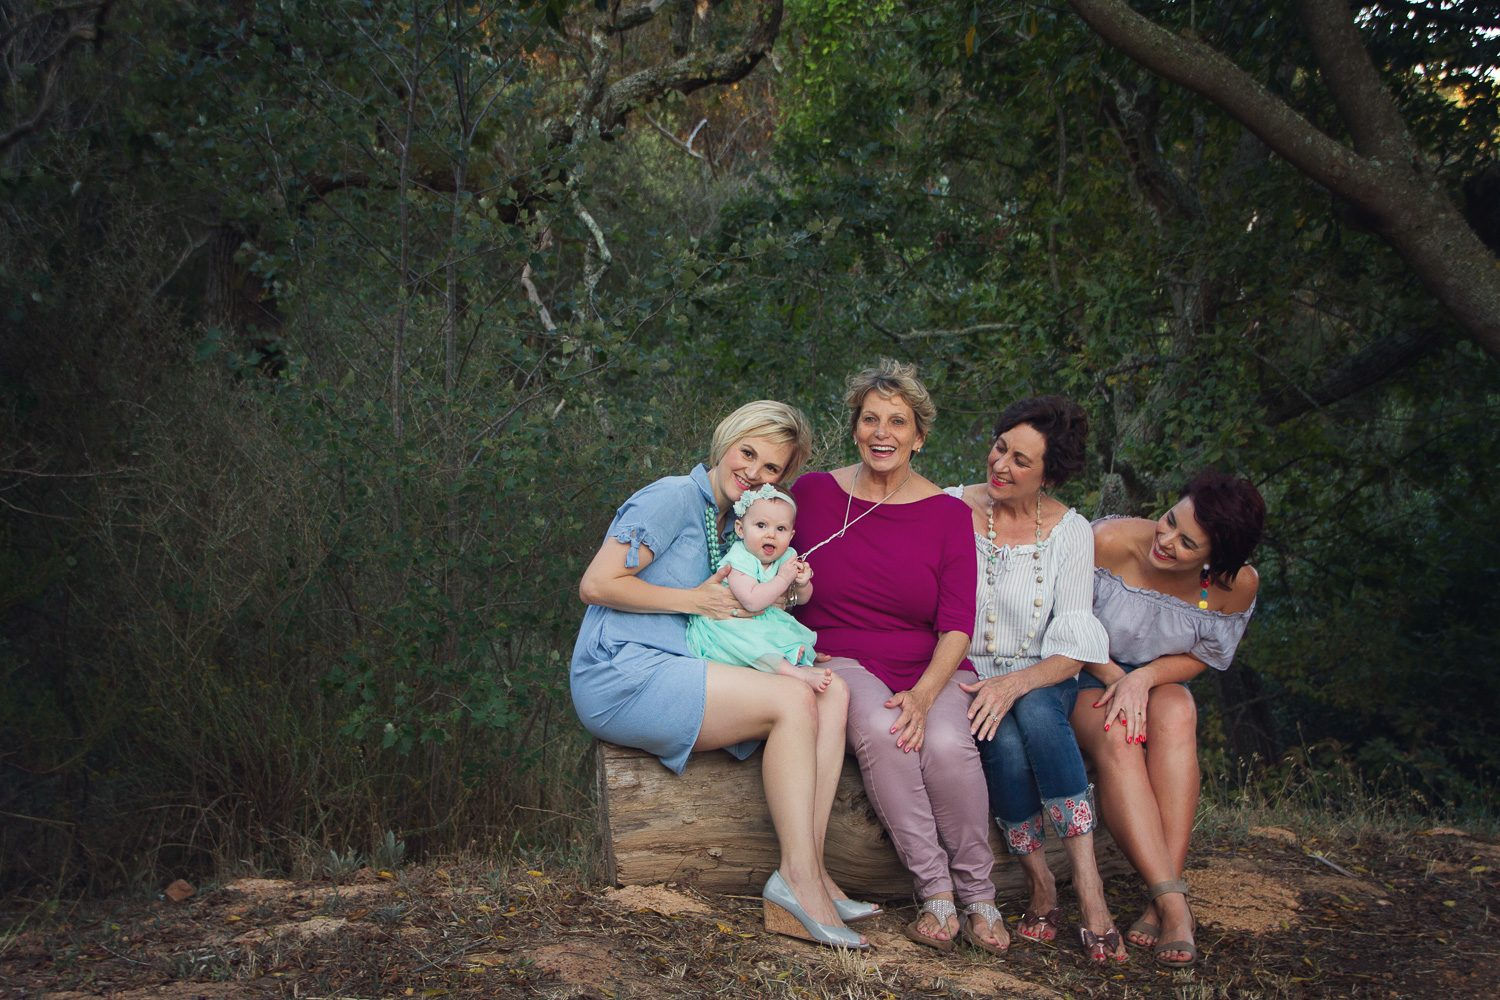 Family-photographer-cape-town-family-shoot-photoshoot-outdoor-studio-83